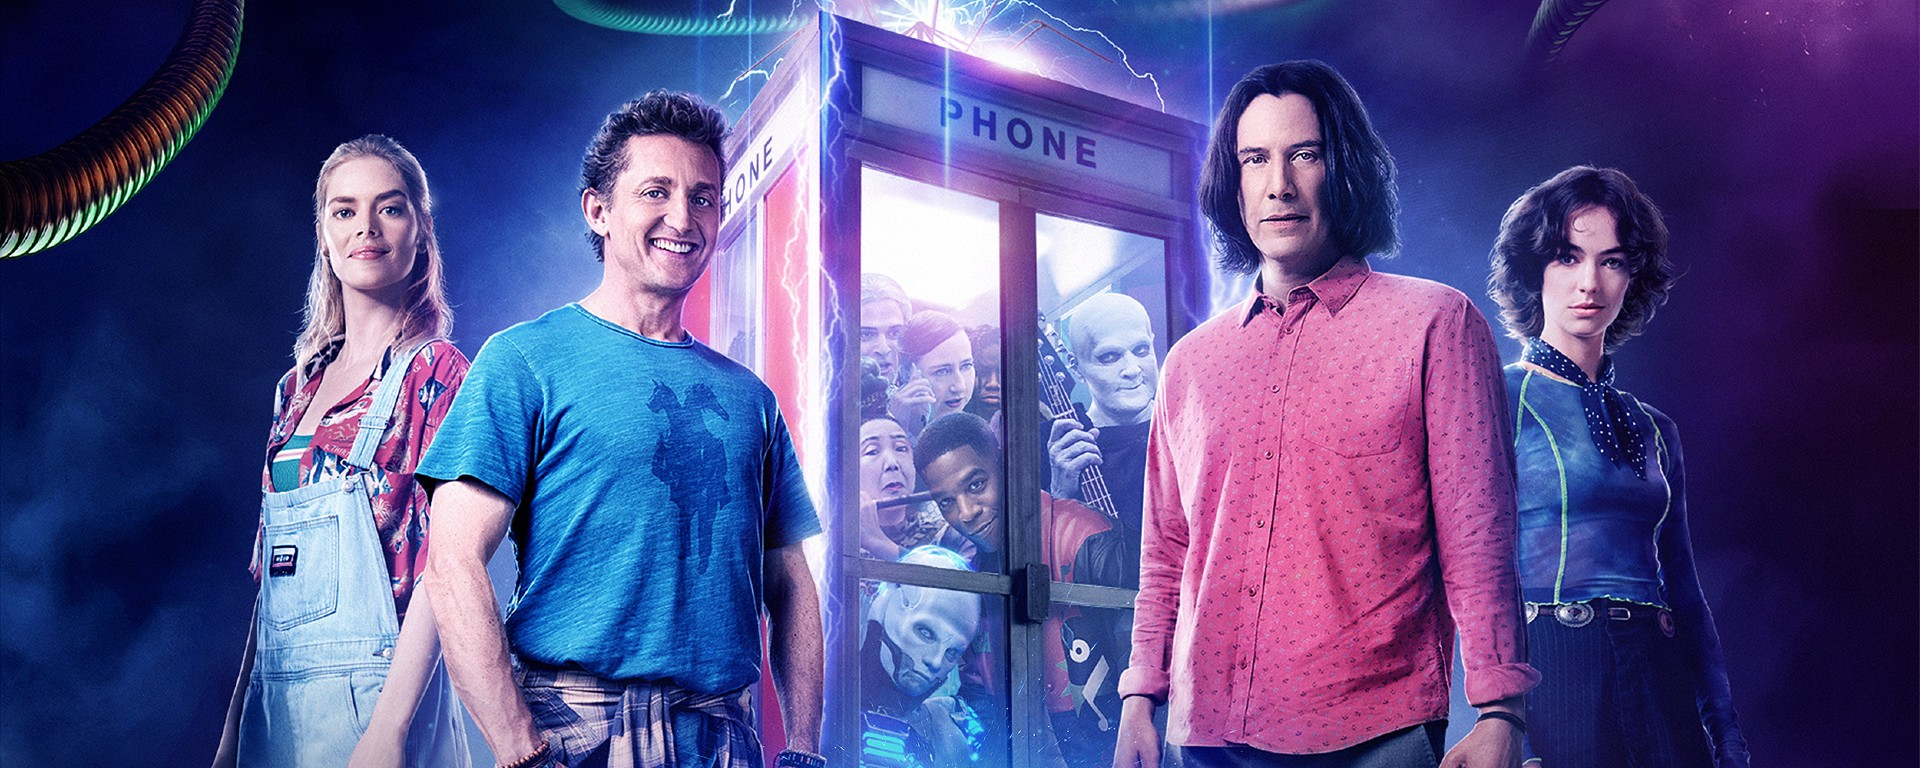 bill and ted 3 review header